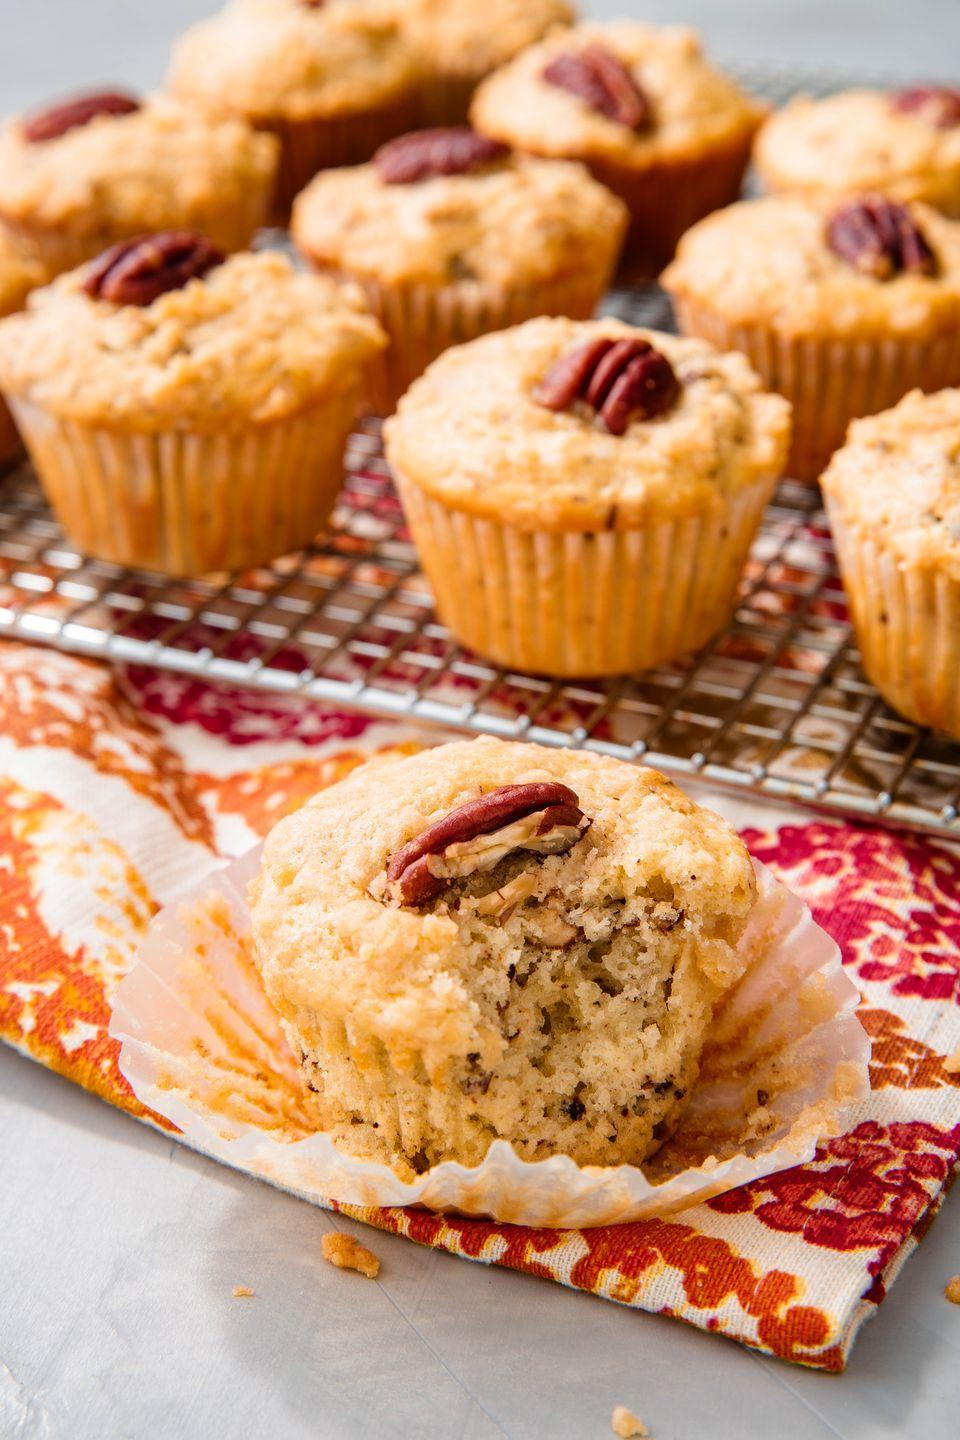 "<p>The PERFECT fall breakfast.</p><p>Get the recipe from <a href=""https://www.delish.com/holiday-recipes/thanksgiving/a23012784/pecan-pie-muffins-recipe/"" rel=""nofollow noopener"" target=""_blank"" data-ylk=""slk:Delish"" class=""link rapid-noclick-resp"">Delish</a>.</p>"